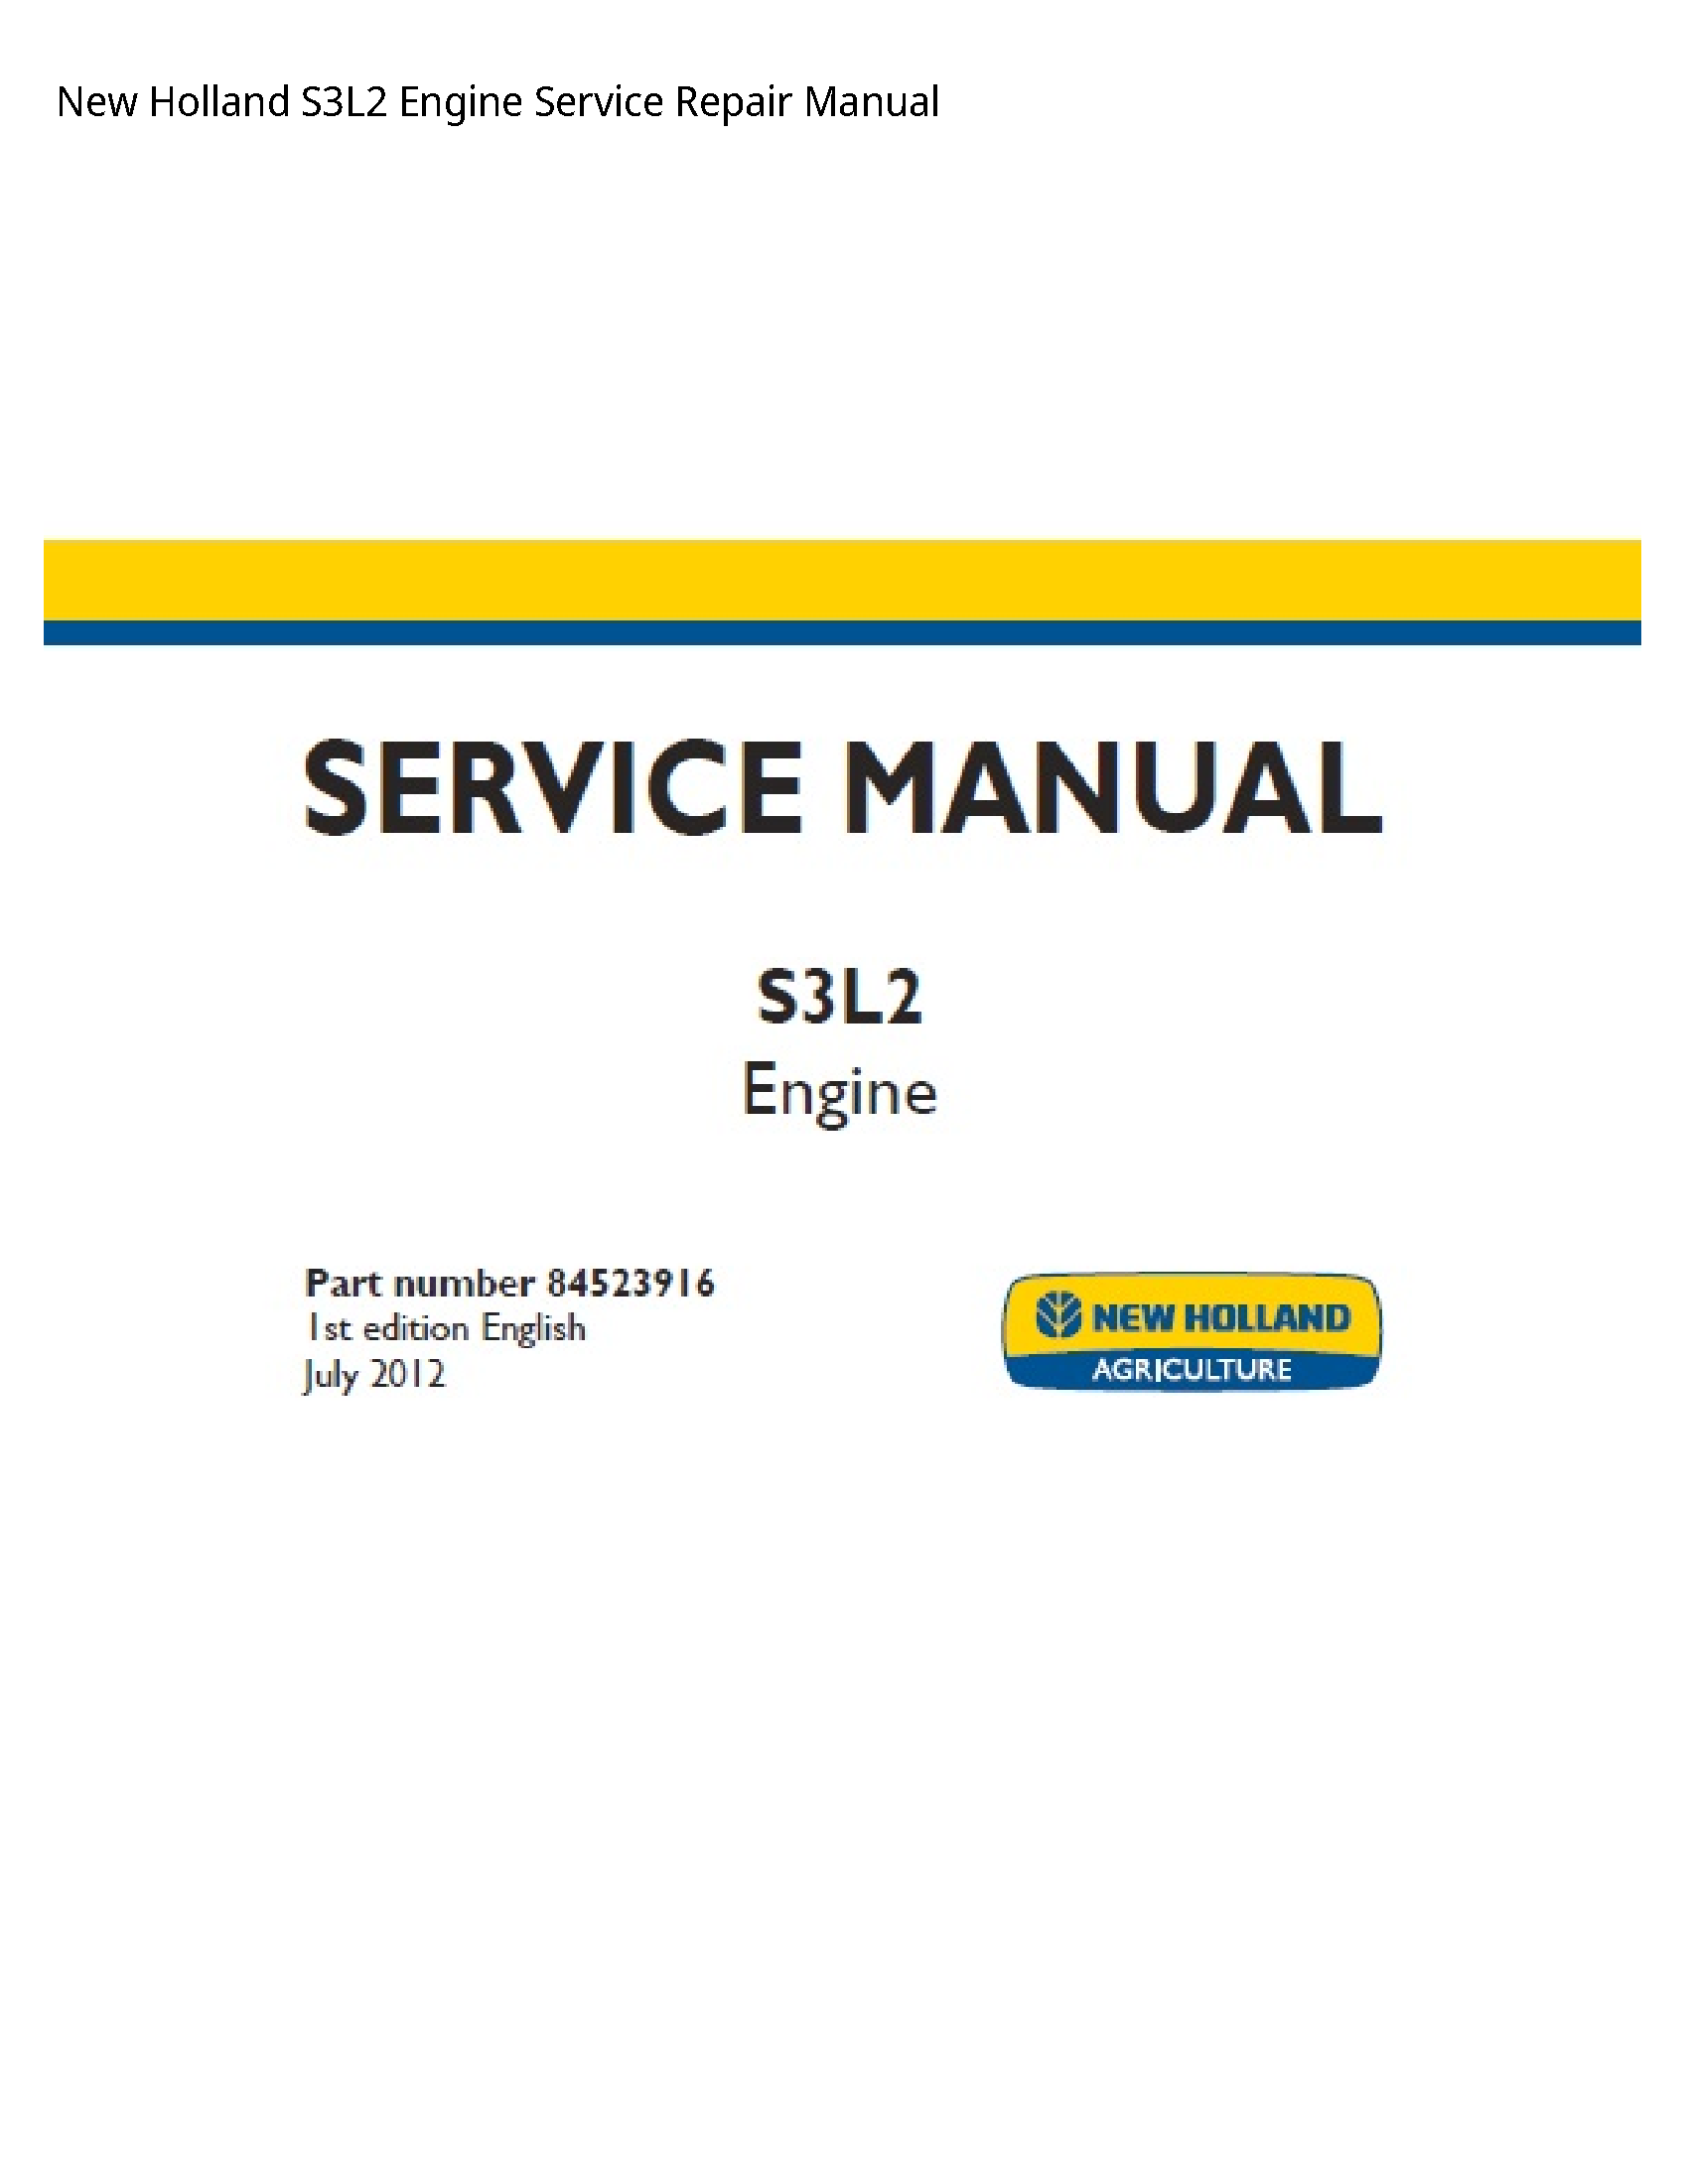 New Holland S3L2 Engine manual